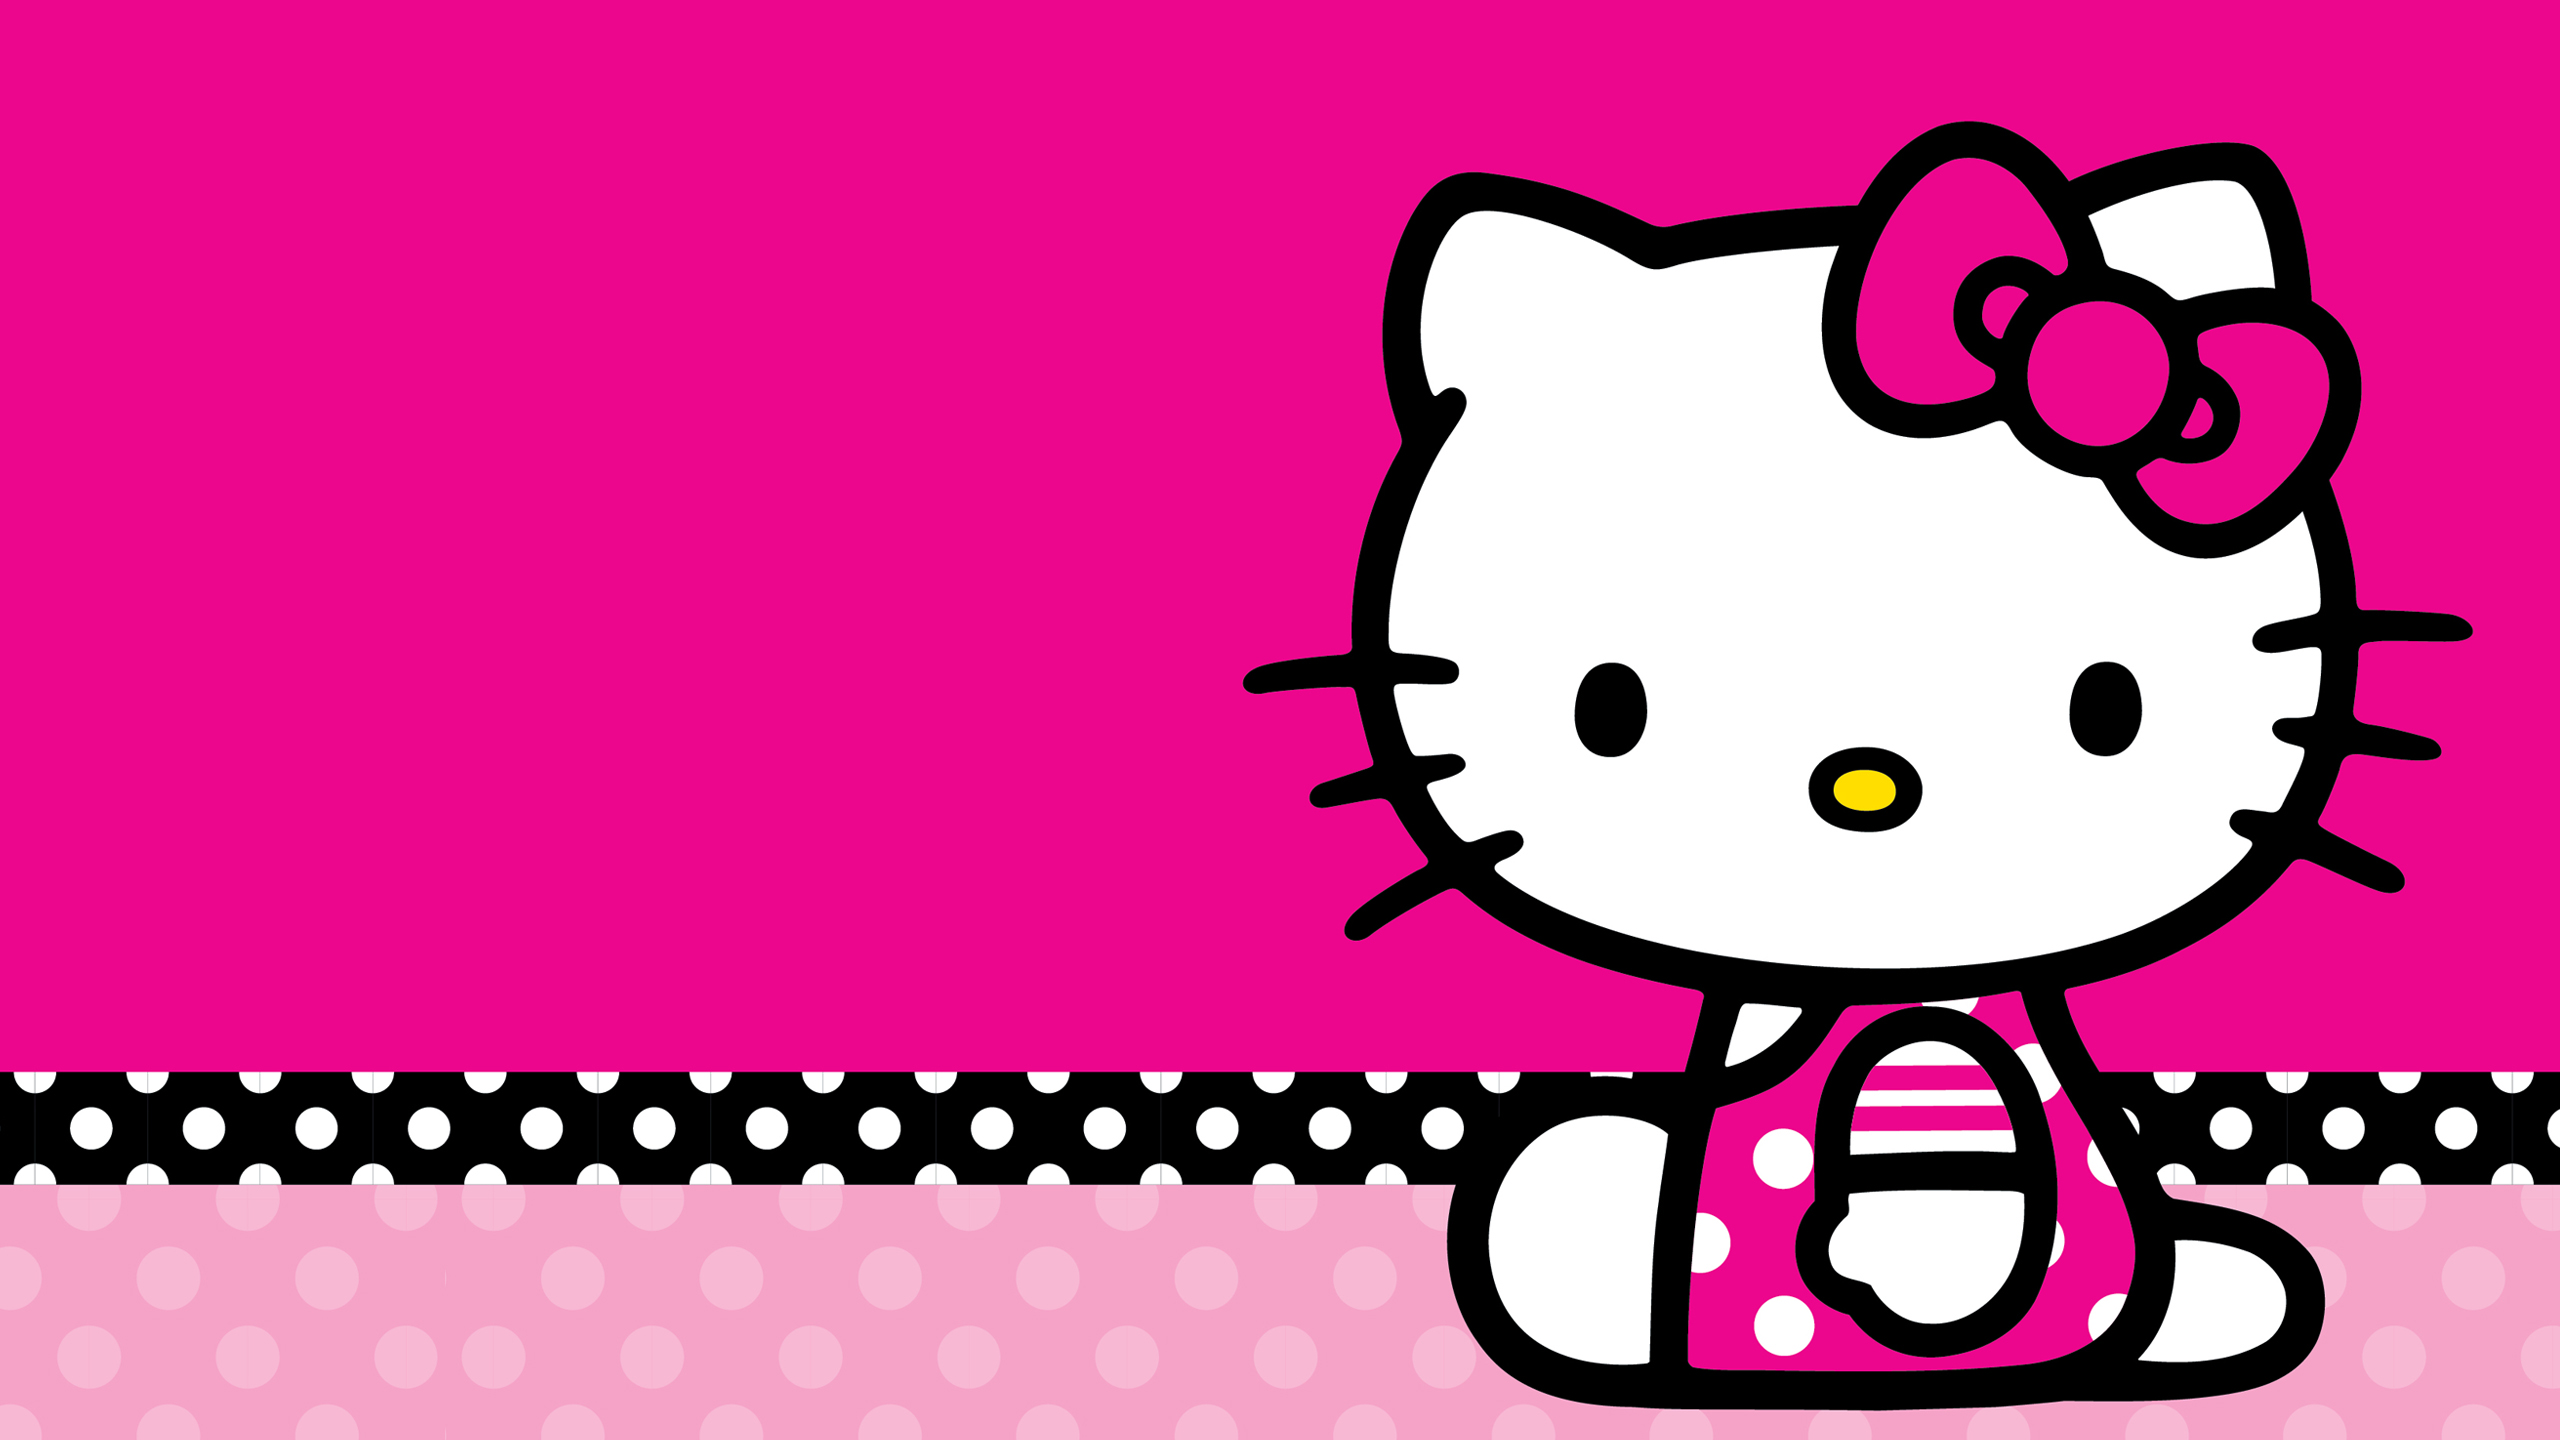 Free Hello Kitty Wallpaper in HD Resolution HD Wallpapers Wallpapers Download High